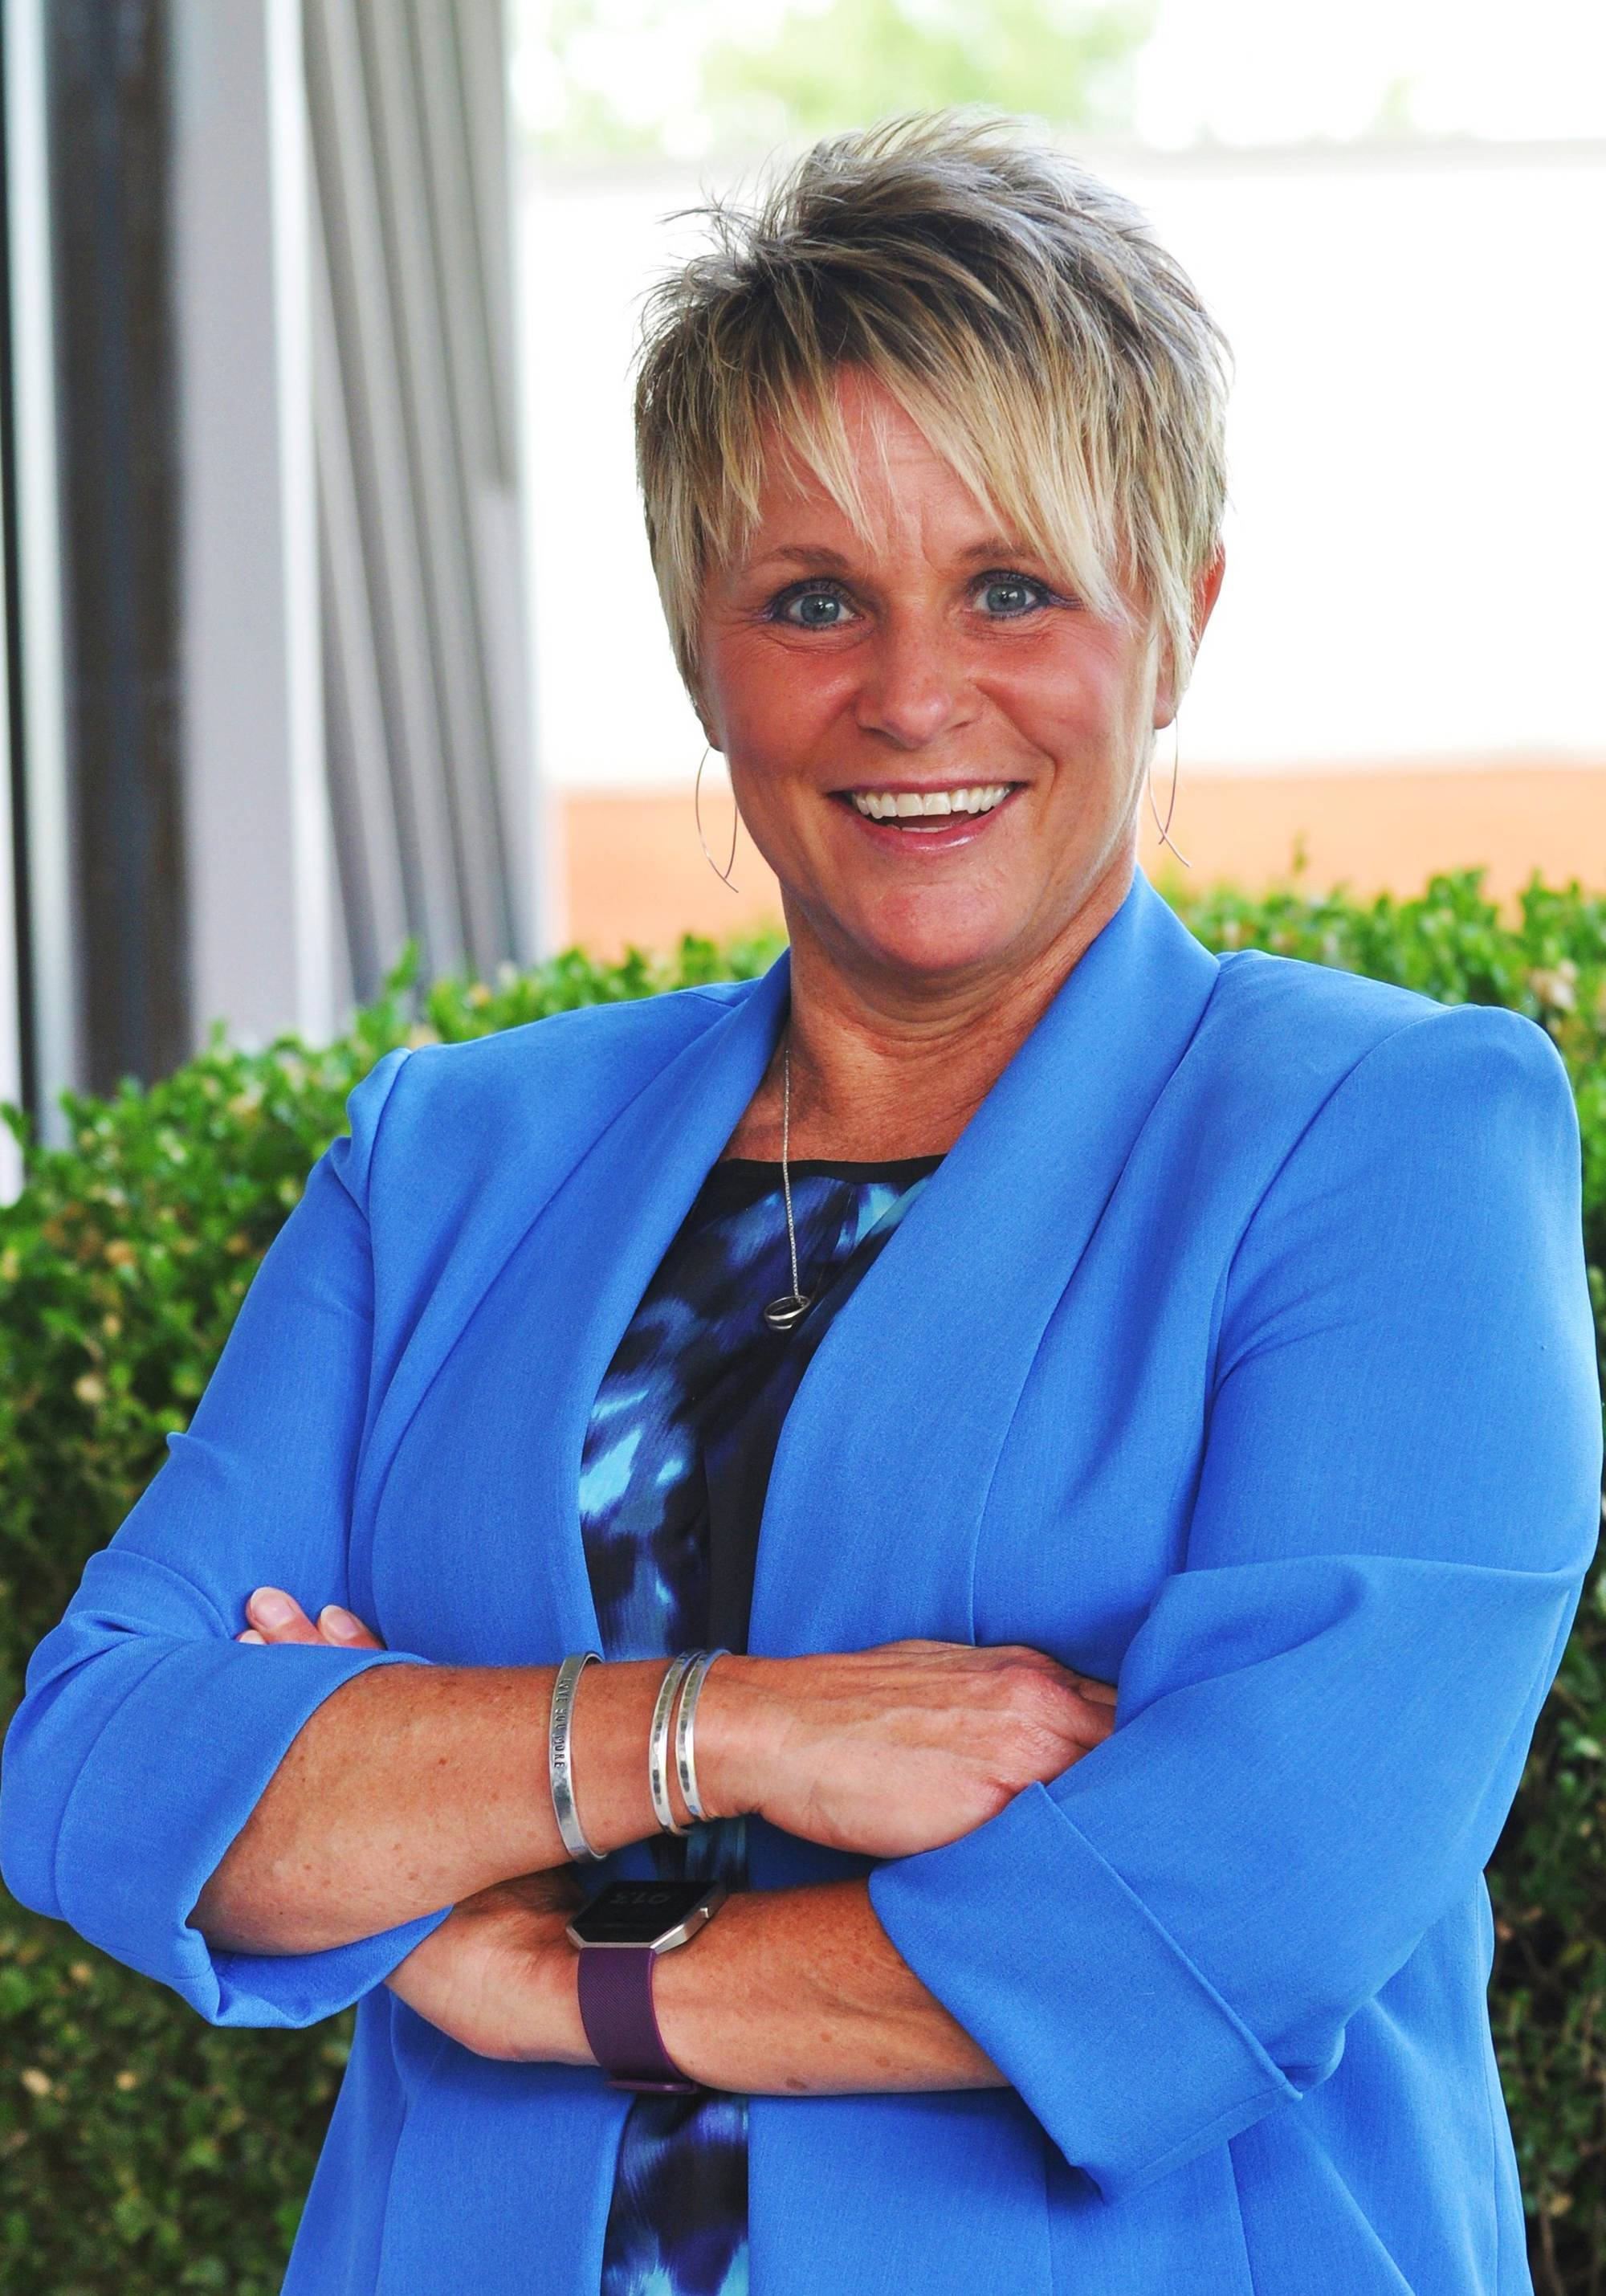 Picture of Diana Herold, CPA President and CEO